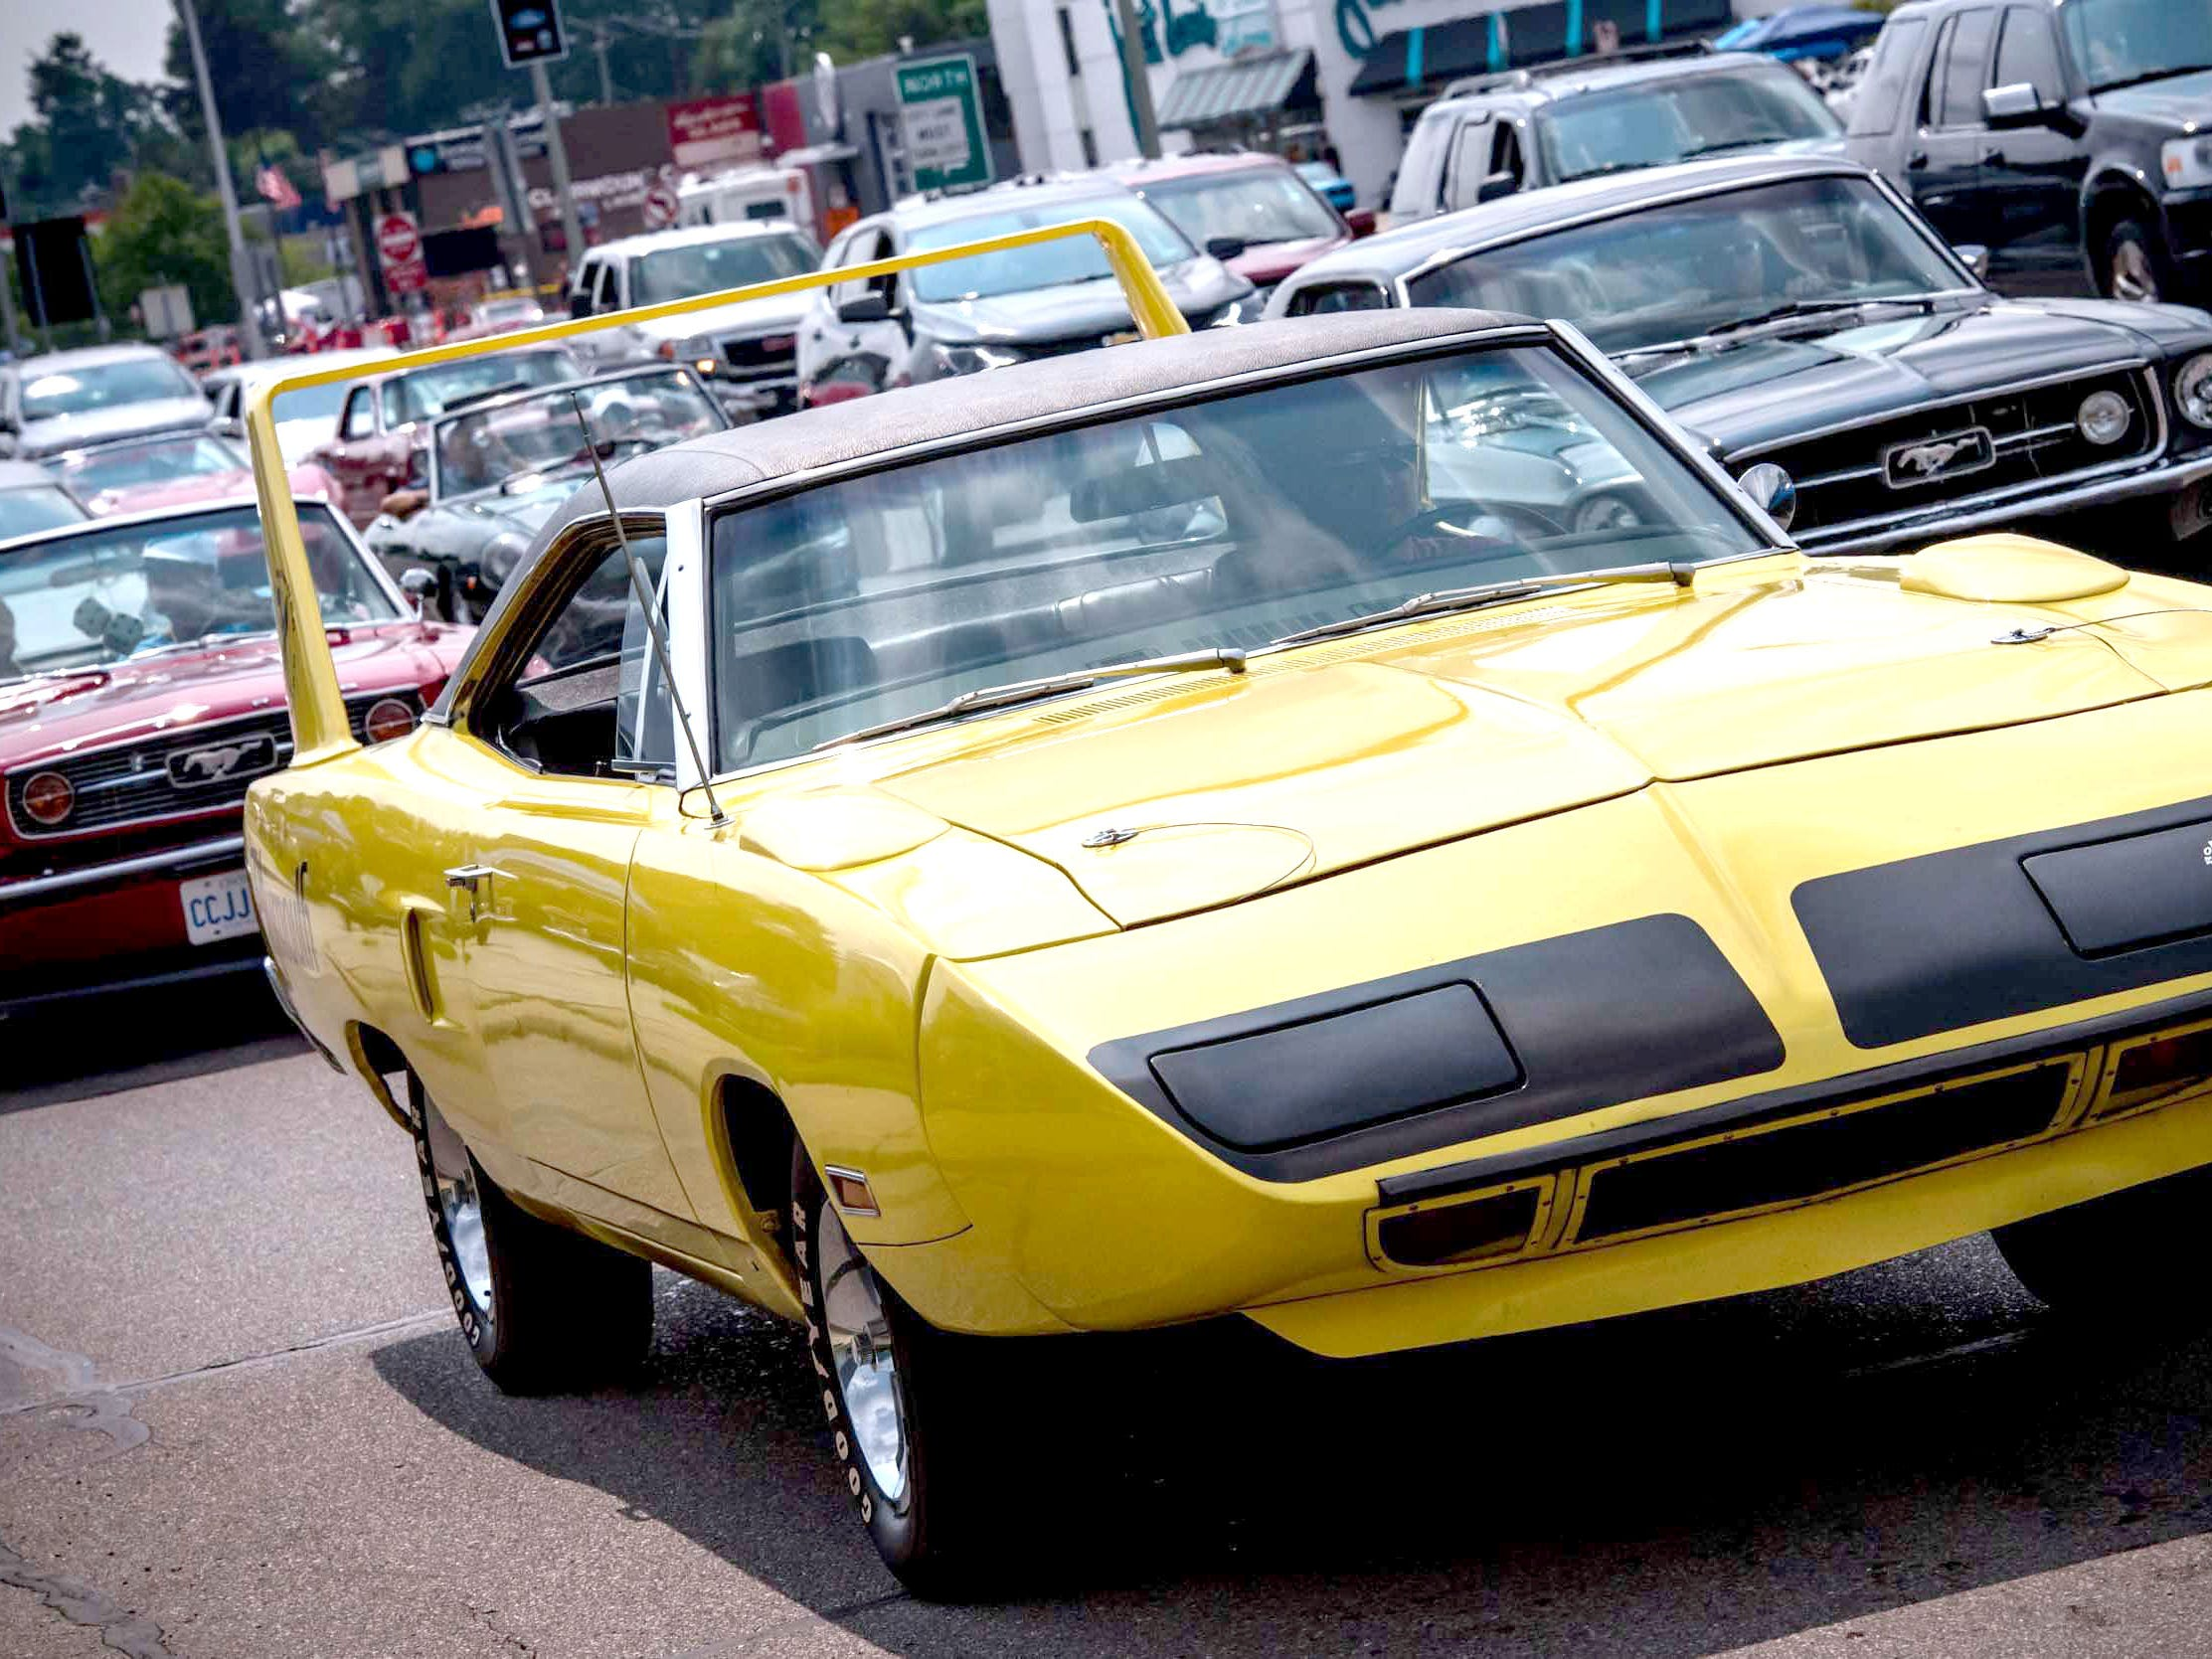 A 1970s Plymouth Superbee followed by classic Mustangs during the Woodward Dream Cruise August 18, 2018.